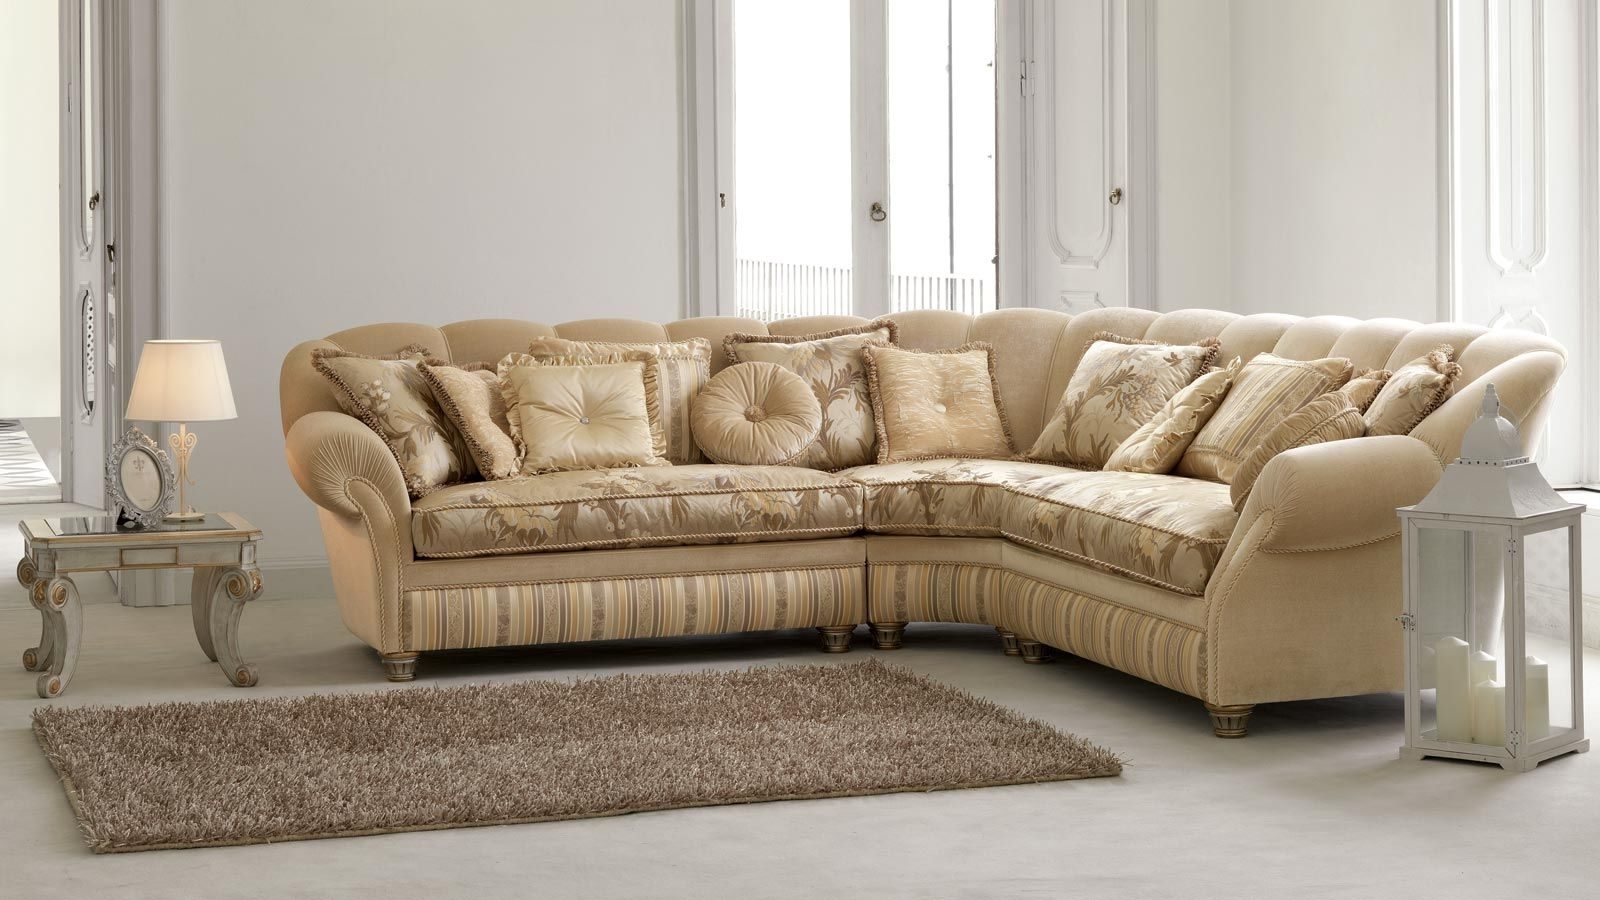 Furniture : Sectional Sofa 80 X 80 Corner Sofa Extension Sectional Regarding 2017 80X80 Sectional Sofas (View 6 of 15)